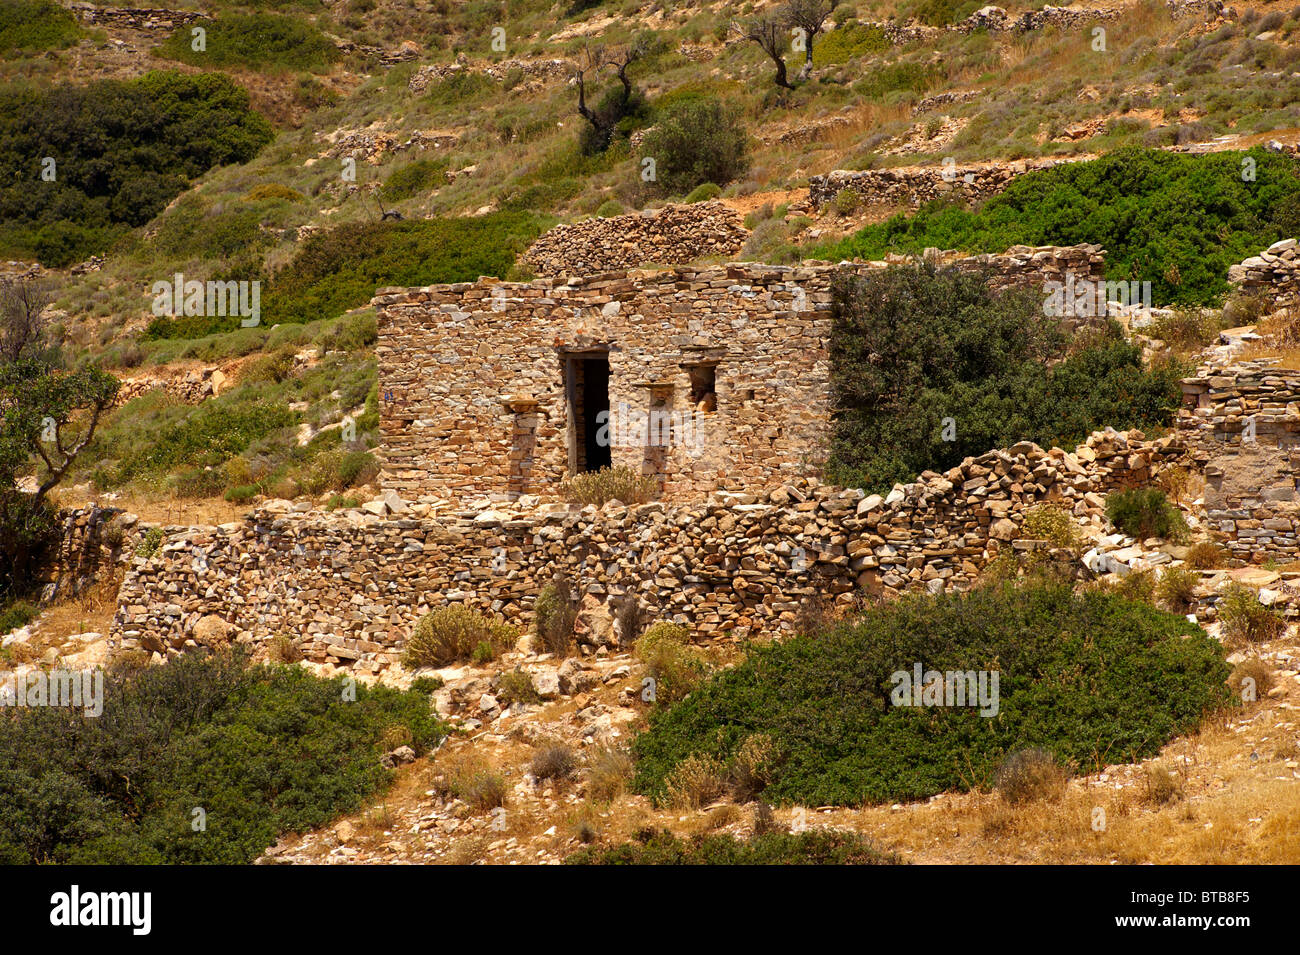 Abandoned farm ruins on Ios, Cyclades Islands, Greece - Stock Image